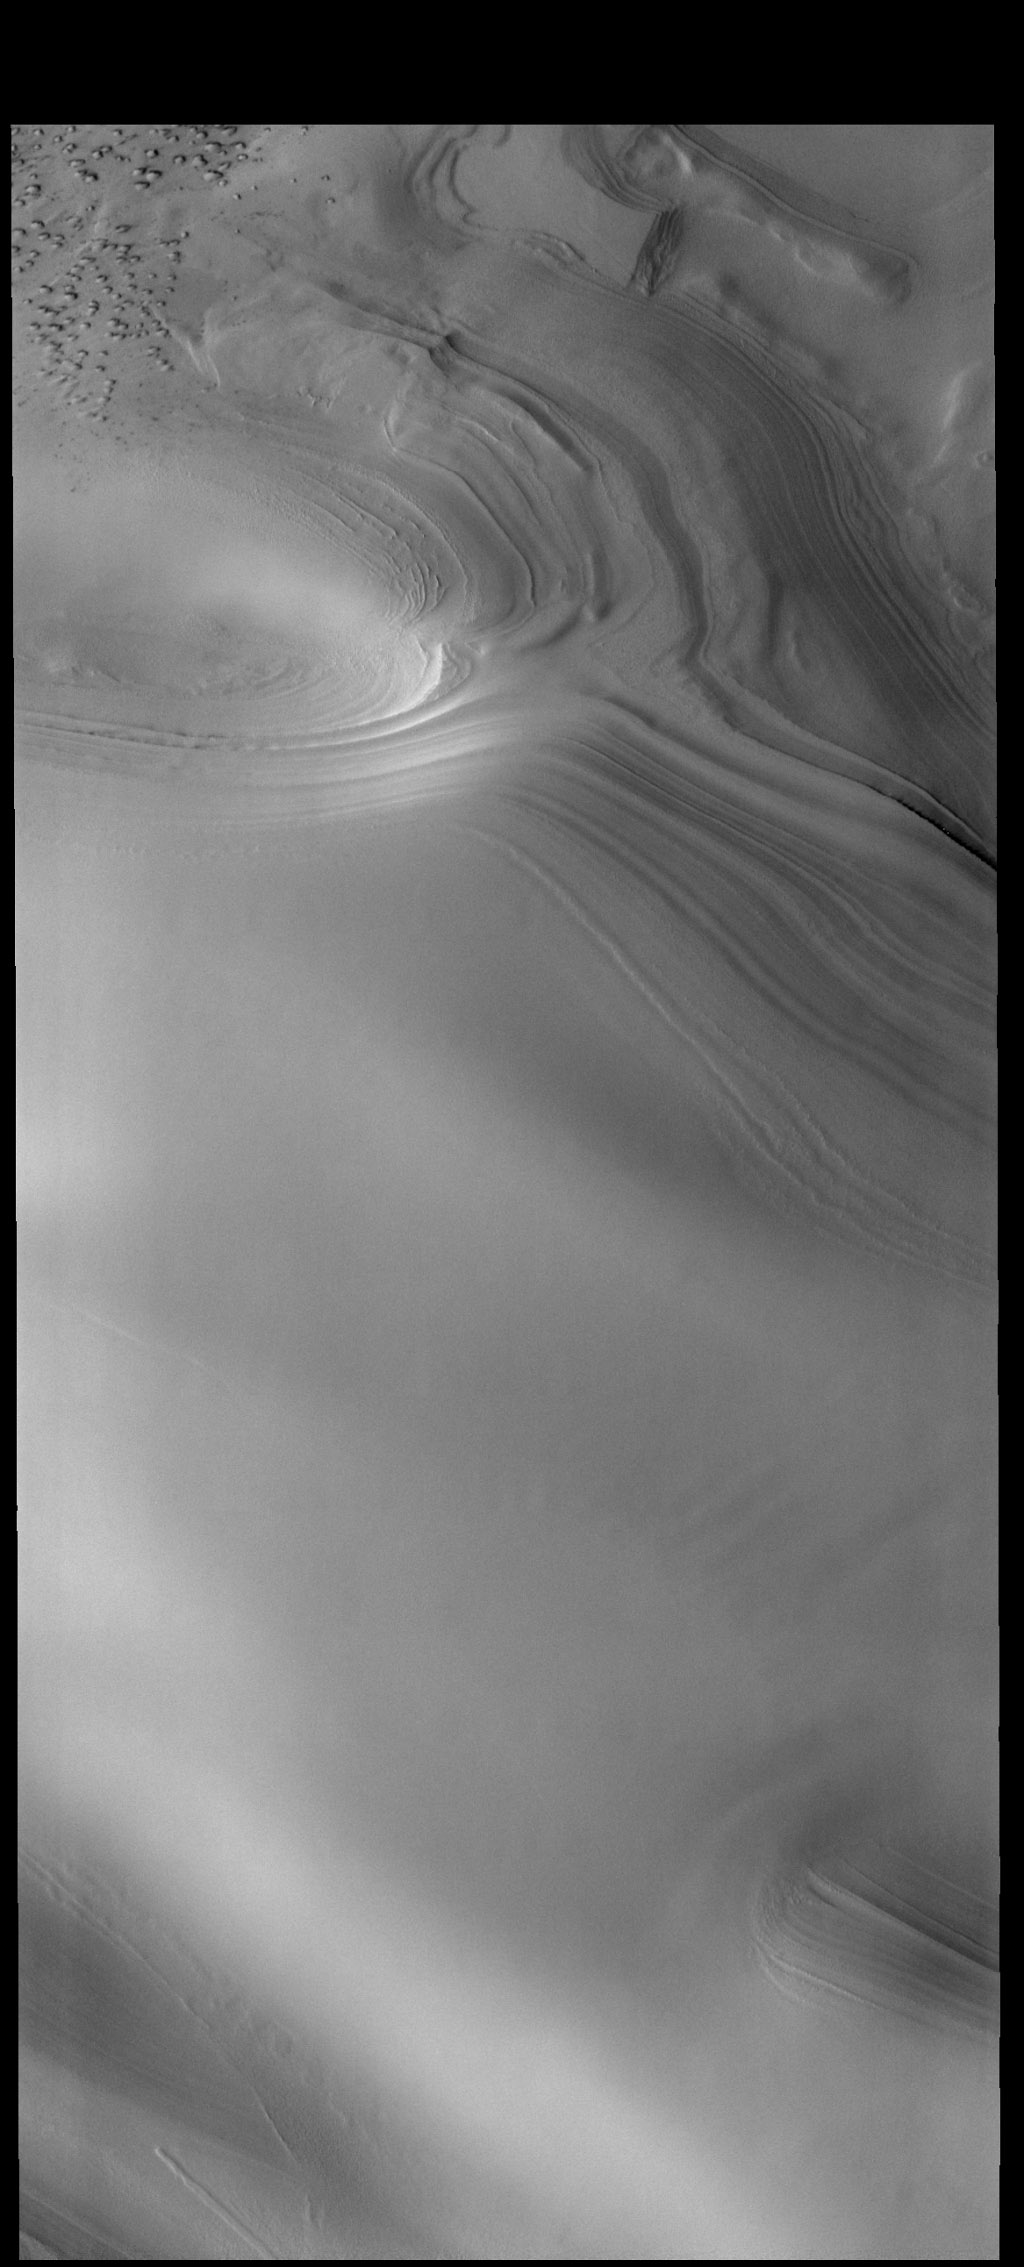 This image captured by NASA's 2001 Mars Odyssey spacecraft shows part of the margin of the north polar cap. Layering of the ice is visible in the top half of the image.